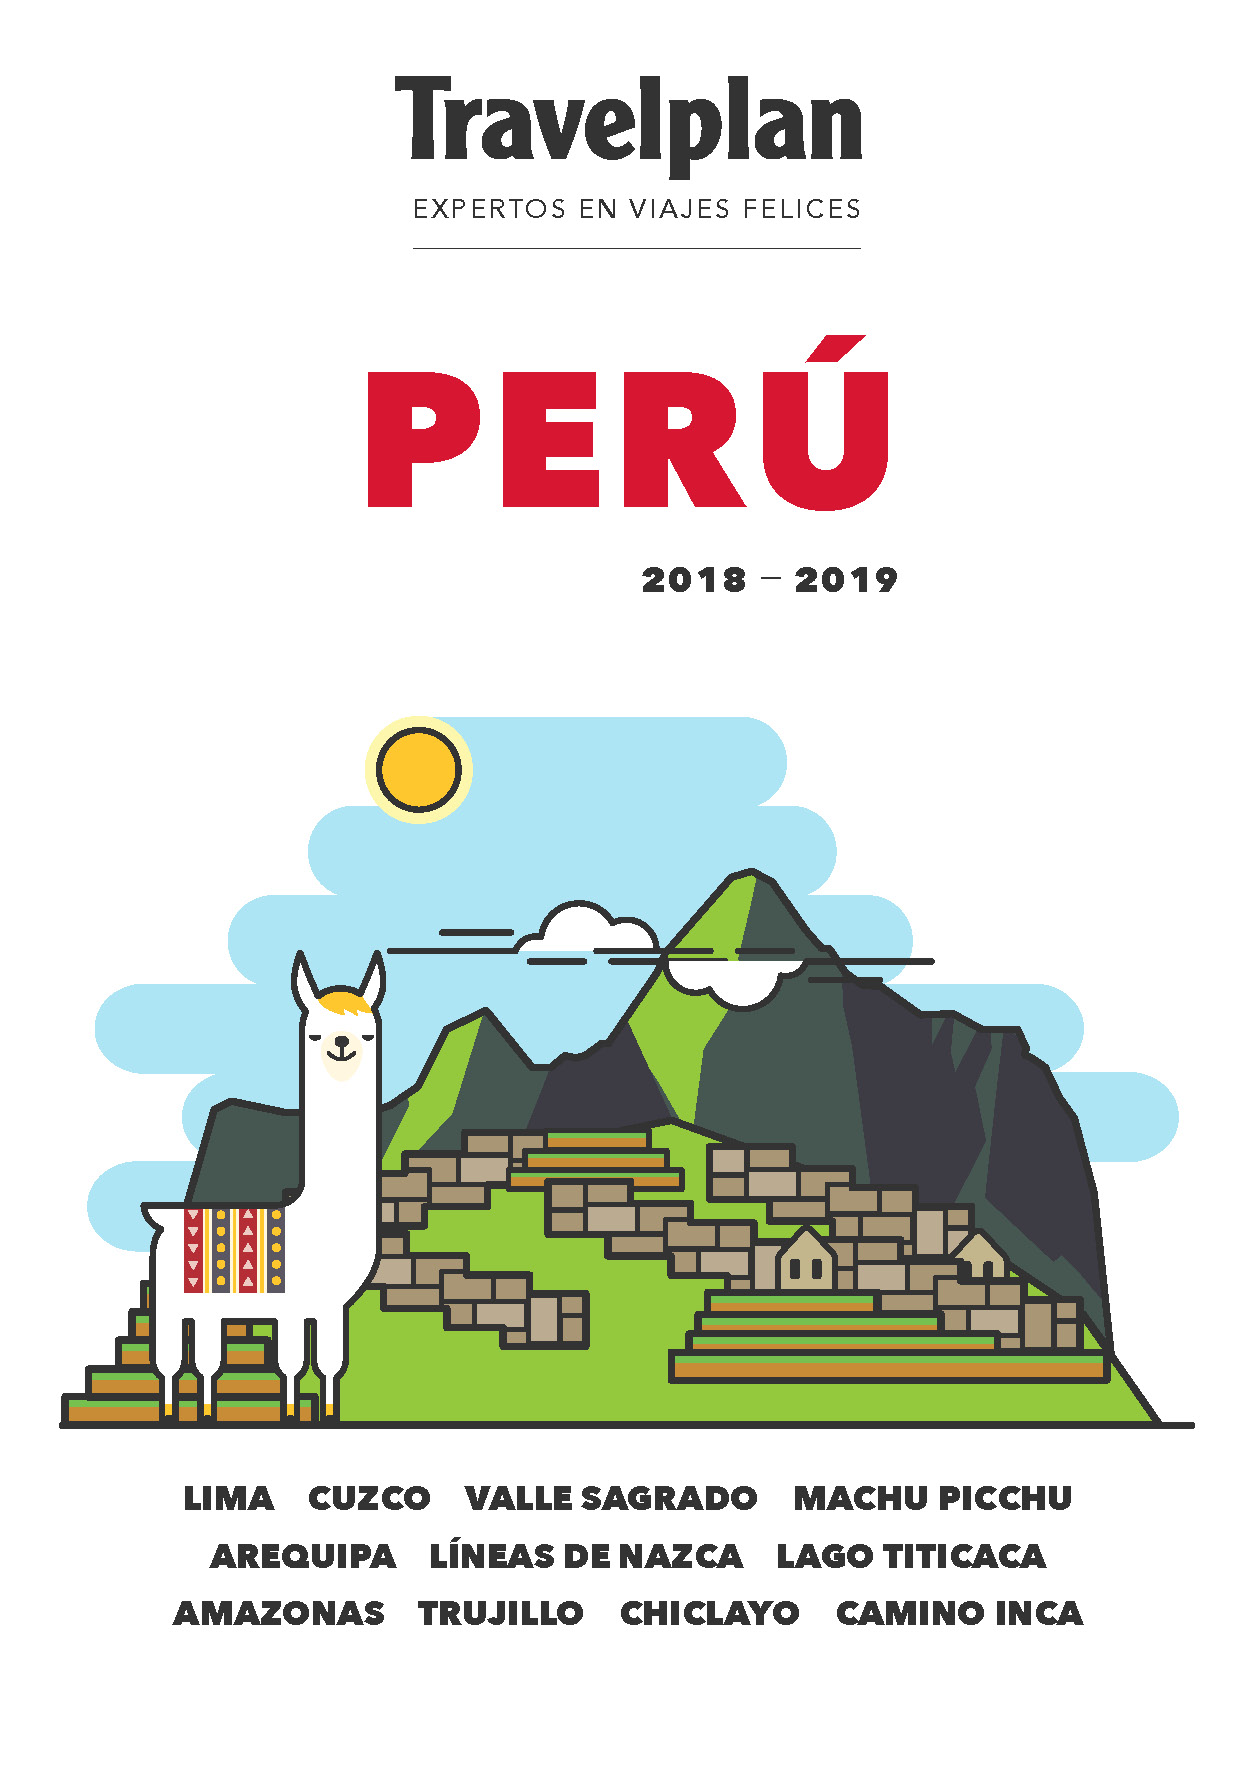 Catalogo Travelplan Peru 2018-2019